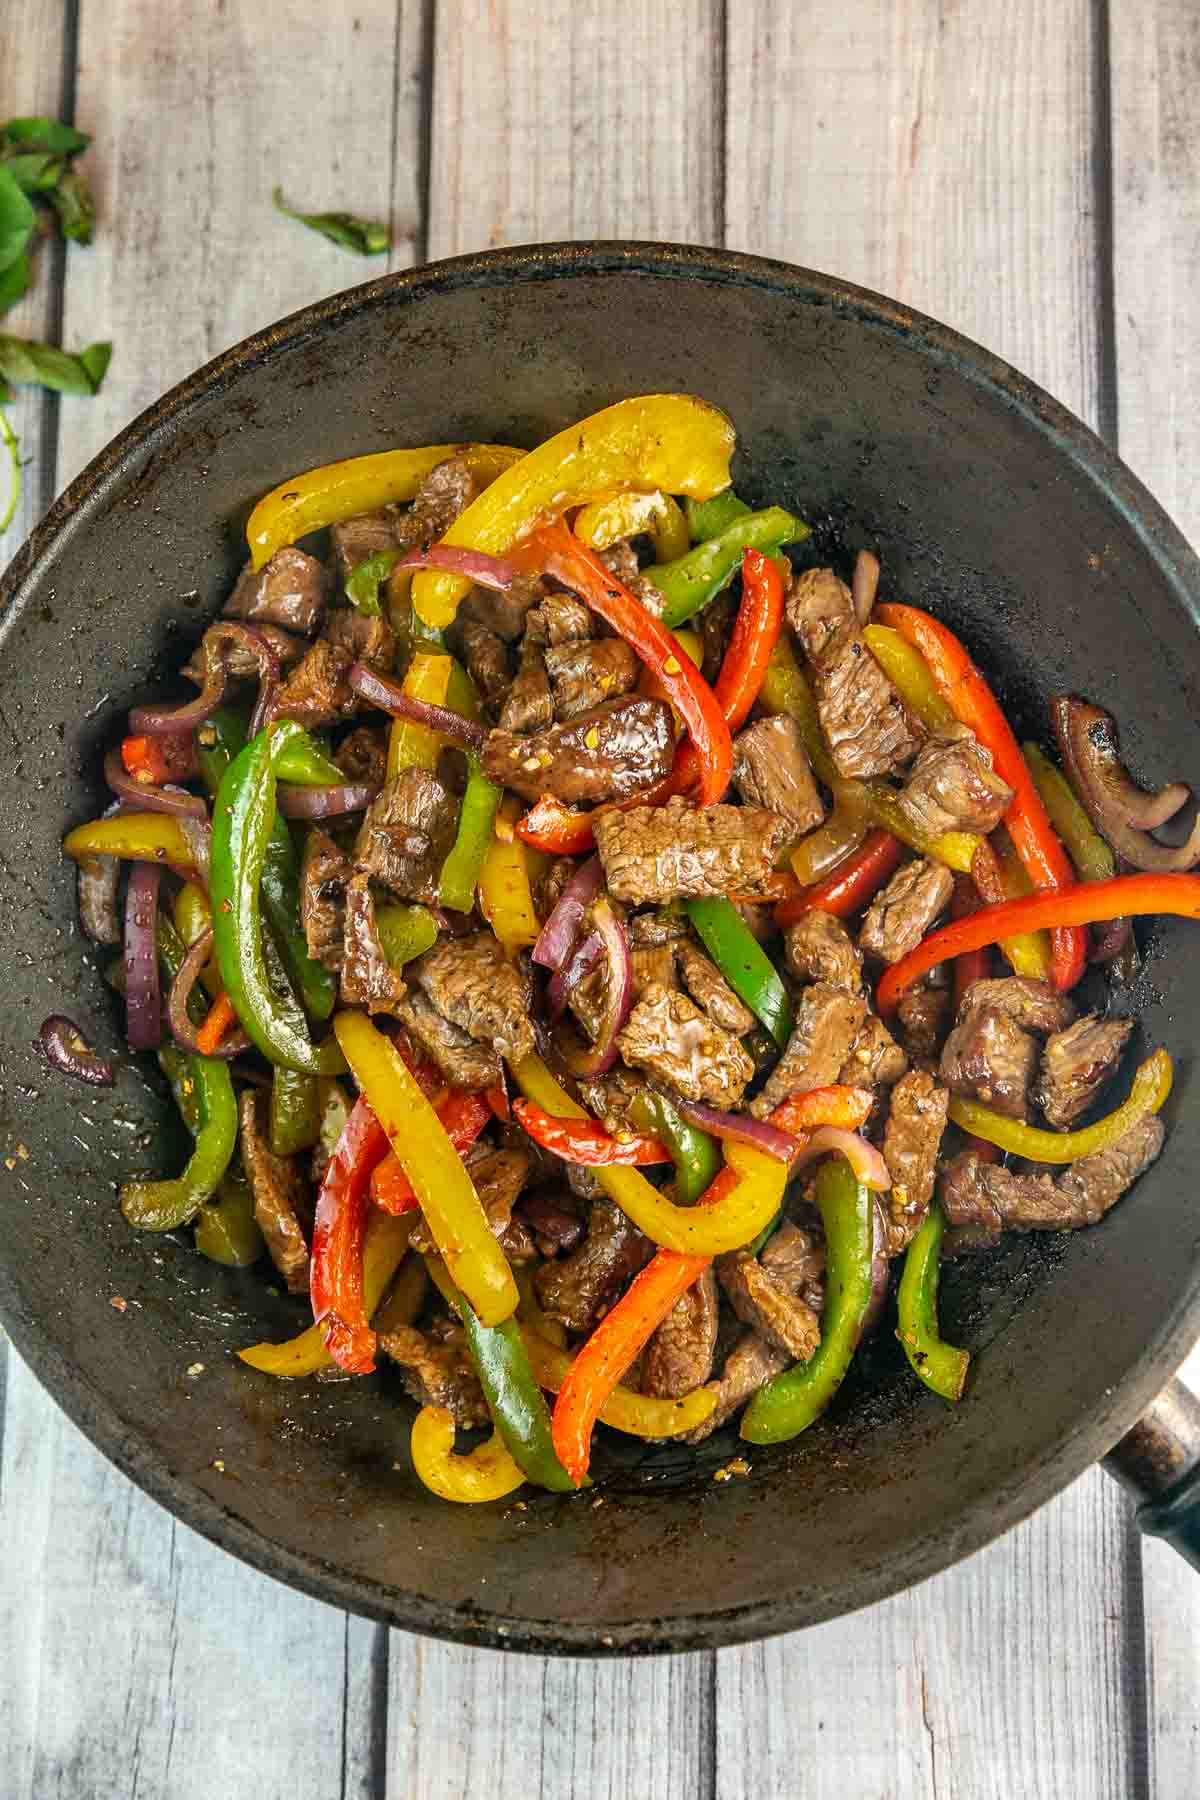 stir fried beef and peppers in a large wok